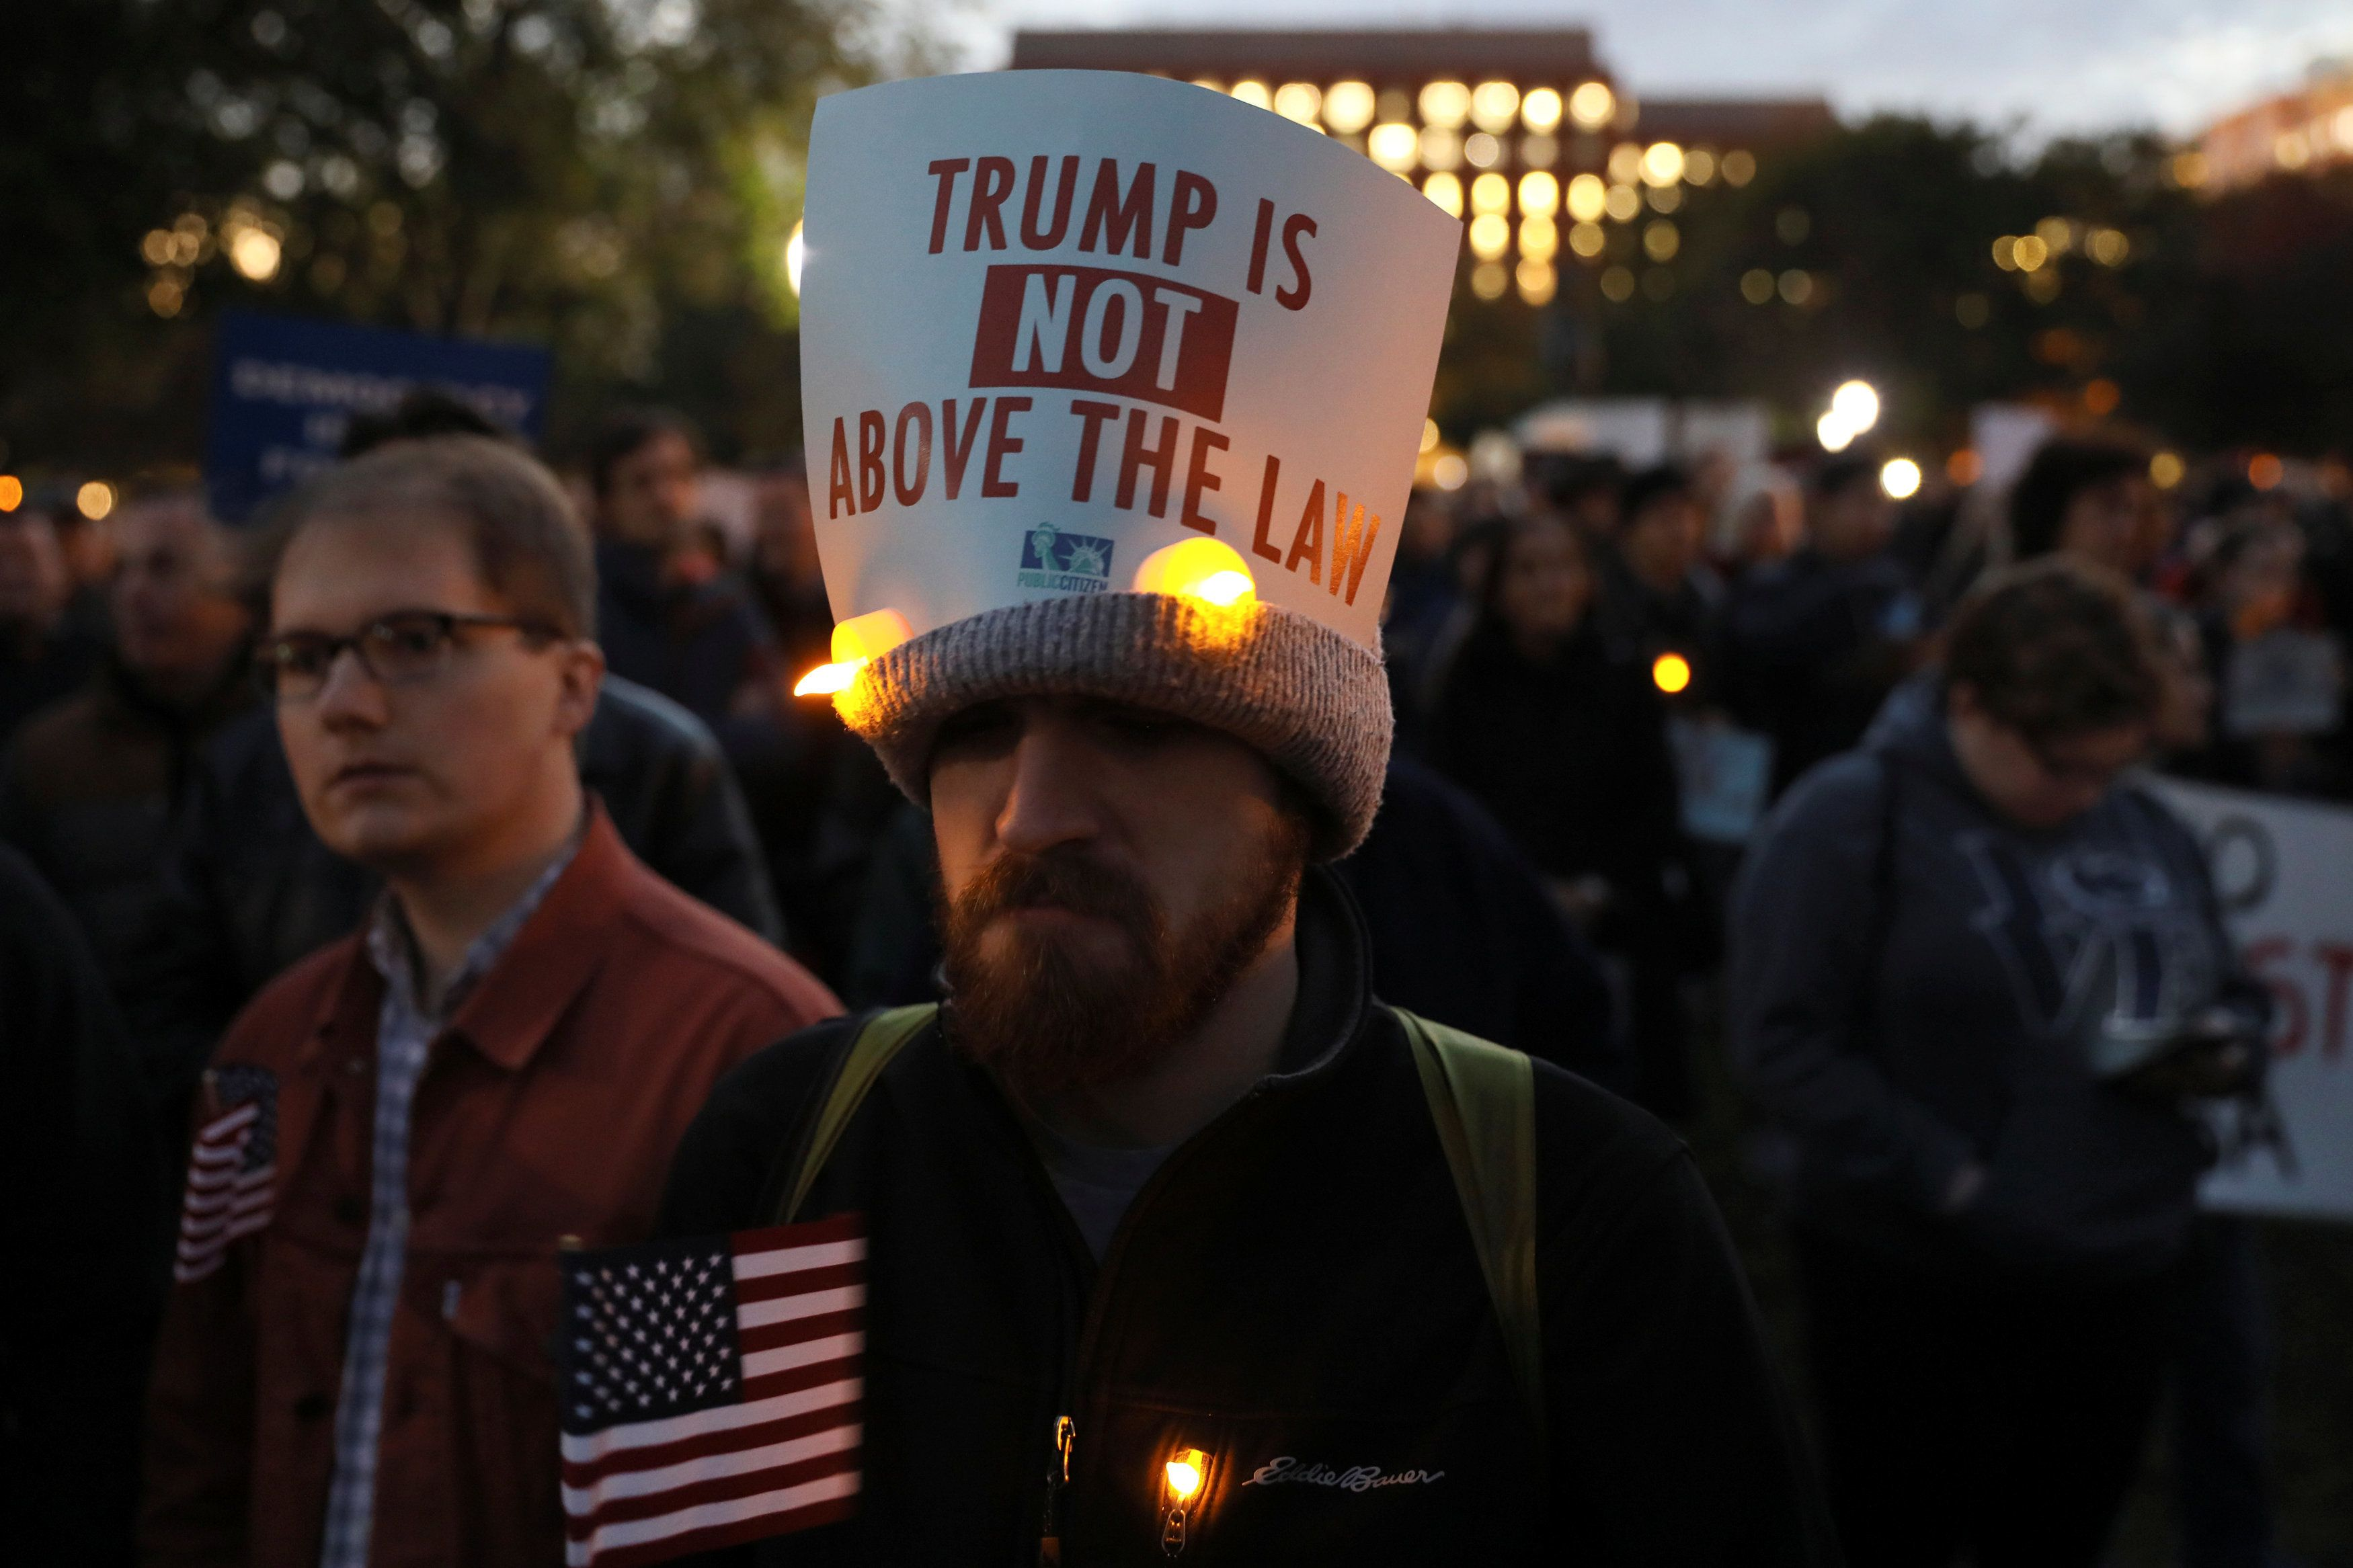 Protesters rally to demand the U.S. government to protect the investigation led by Special Counsel Robert Mueller into alleged Russian meddling in the 2016 Trump campaign, outside the White House in Washington, U.S. November 8, 2018. REUTERS/Jonathan Ernst